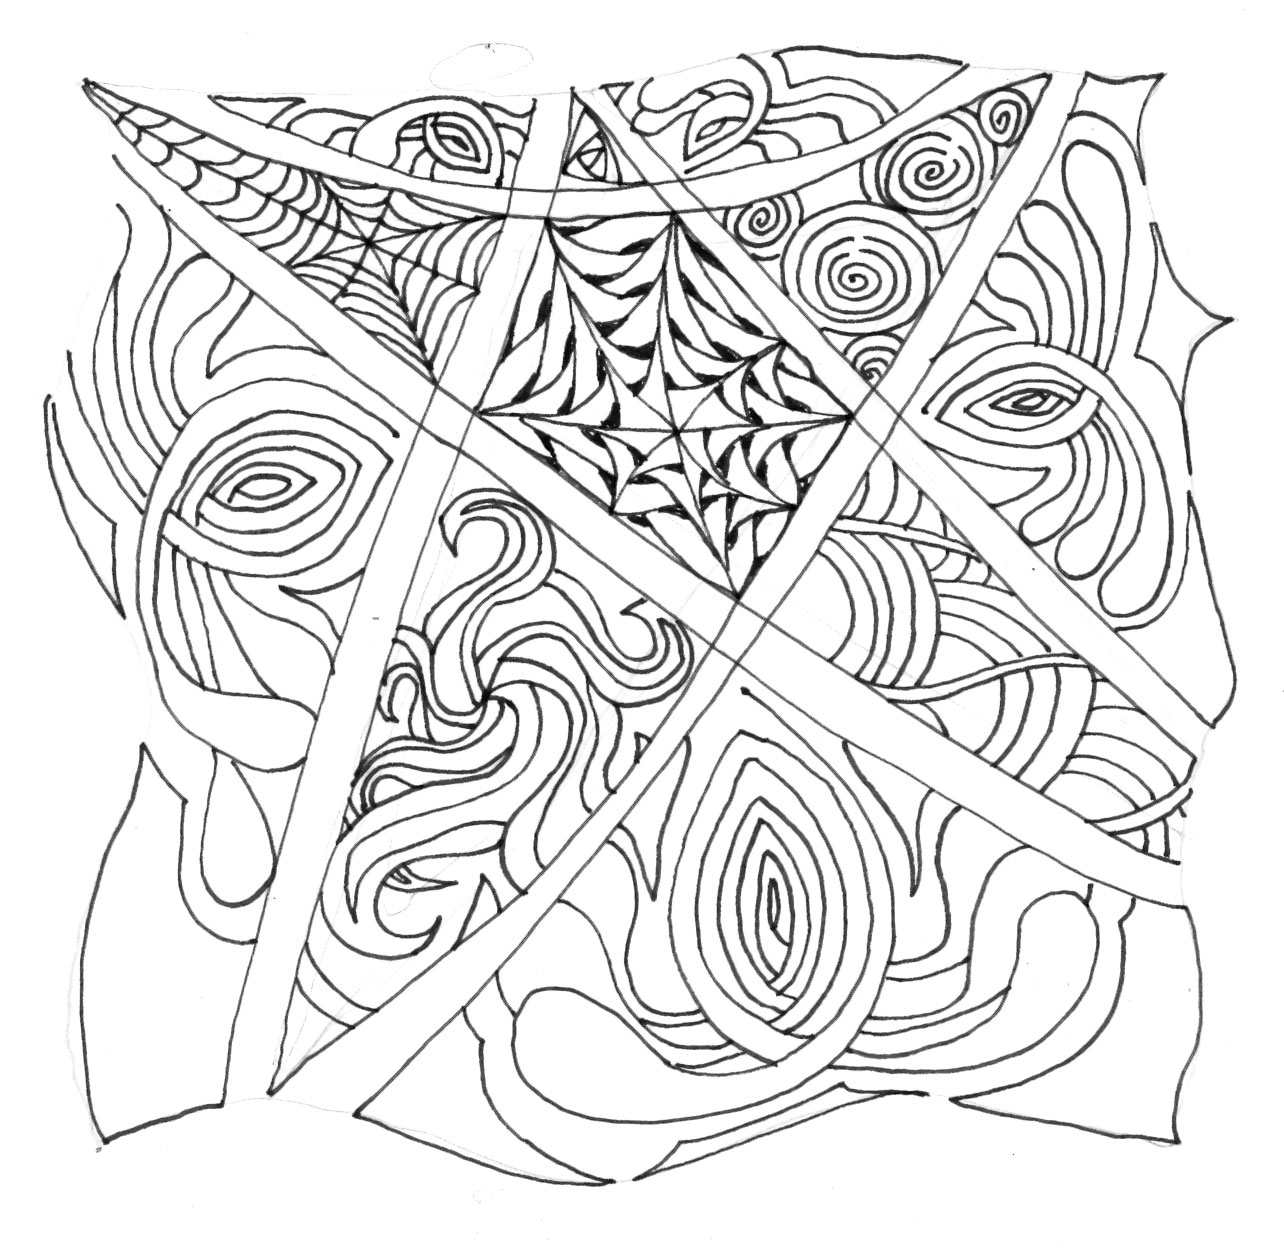 Pirate Coins Coloring Pages Coloring Pages